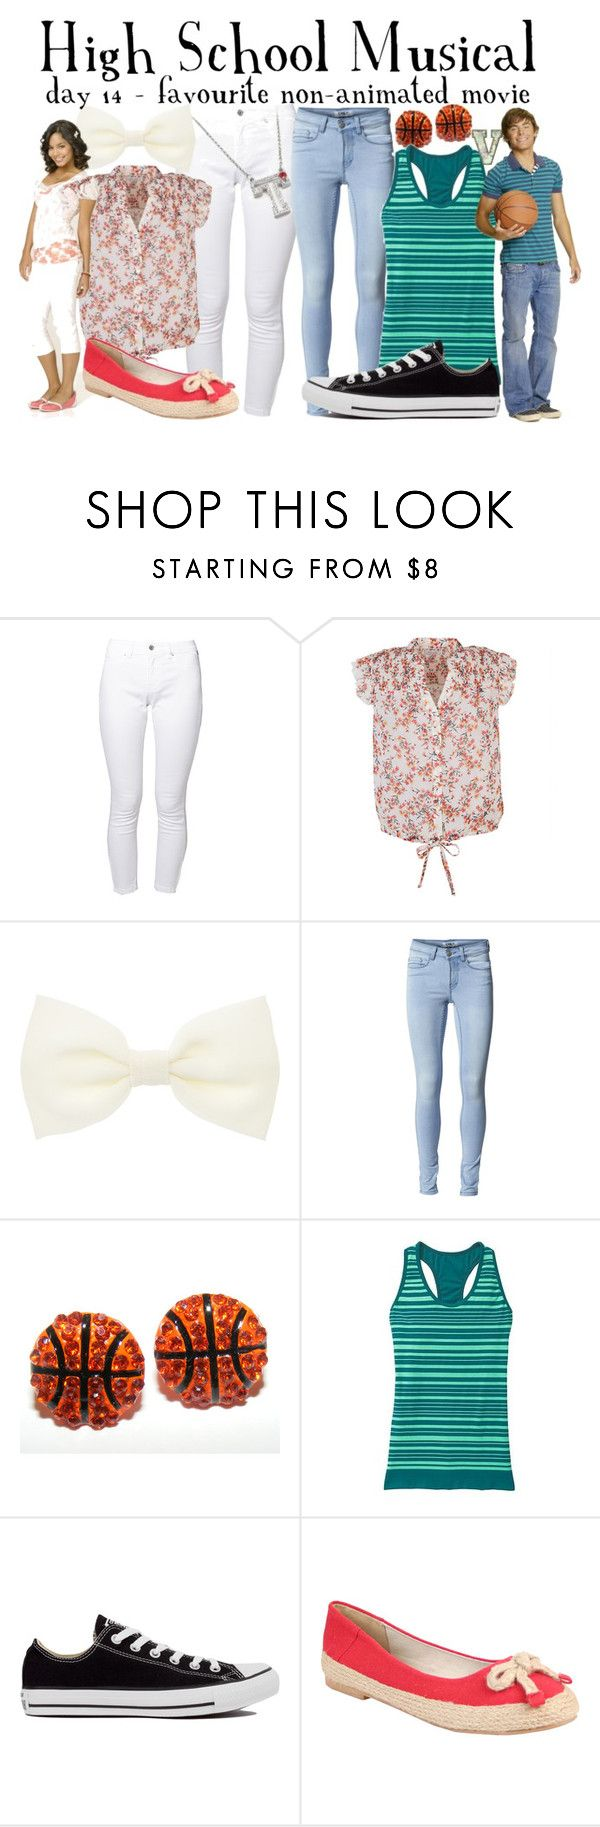 """""""30 Day Disney; 14 - Troy and Gabriella (High School Musical)"""" by fabfandoms ❤ liked on Polyvore featuring Brooklyn Supply Co., dELiA*s, Accessorize, ONLY, Athleta, Converse, Disney, Nomad, women's clothing and women"""